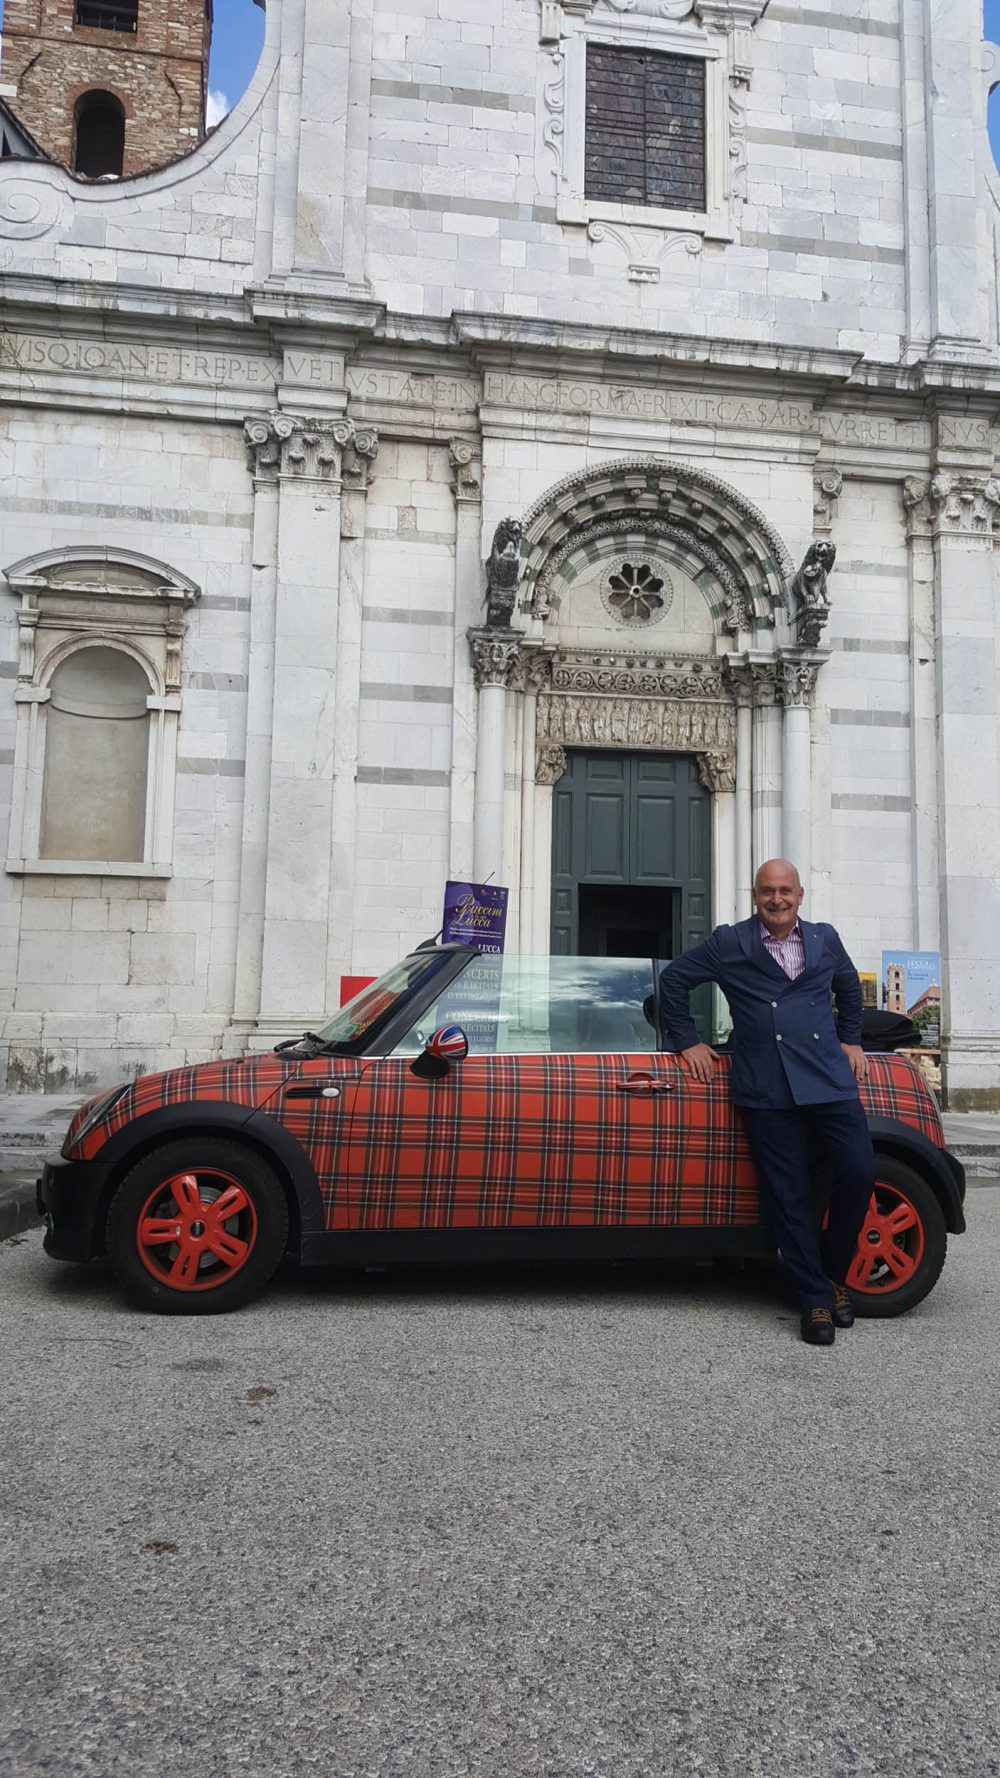 "His mini, hand-painted by a local artist in Royal Stewart tartan AN Italian opera conductor has staked a claim to being Scotland's biggest superfan - after visiting the Edinburgh Tattoo for the 23rd time in a row. Professor Andrea Colombini drives a Tartan mini, eats Angus beef imported specially for him by his local restaurant and organises pipe band concerts in his home town in Tuscany. The 48-year-old drinks Ardbeg whisky, eats Scottish scallops and Cranachan, and has filled his home in Lucca with Scottish paintings, tartan rugs, and the headdress worn by a Victorian Scots soldier. Andrea has taken his love for Scotland into his professional life by incorporating bagpipes and drummers into his Italian orchestras. He even uses Scottish slang such as ""braw"" and signs off emails with ""Alba Gu Brath - Gaelic for Scotland forever. Remarkably, he has managed to visit Edinburgh every year since 1993 to watch the annual tattoo on the castle esplanade."